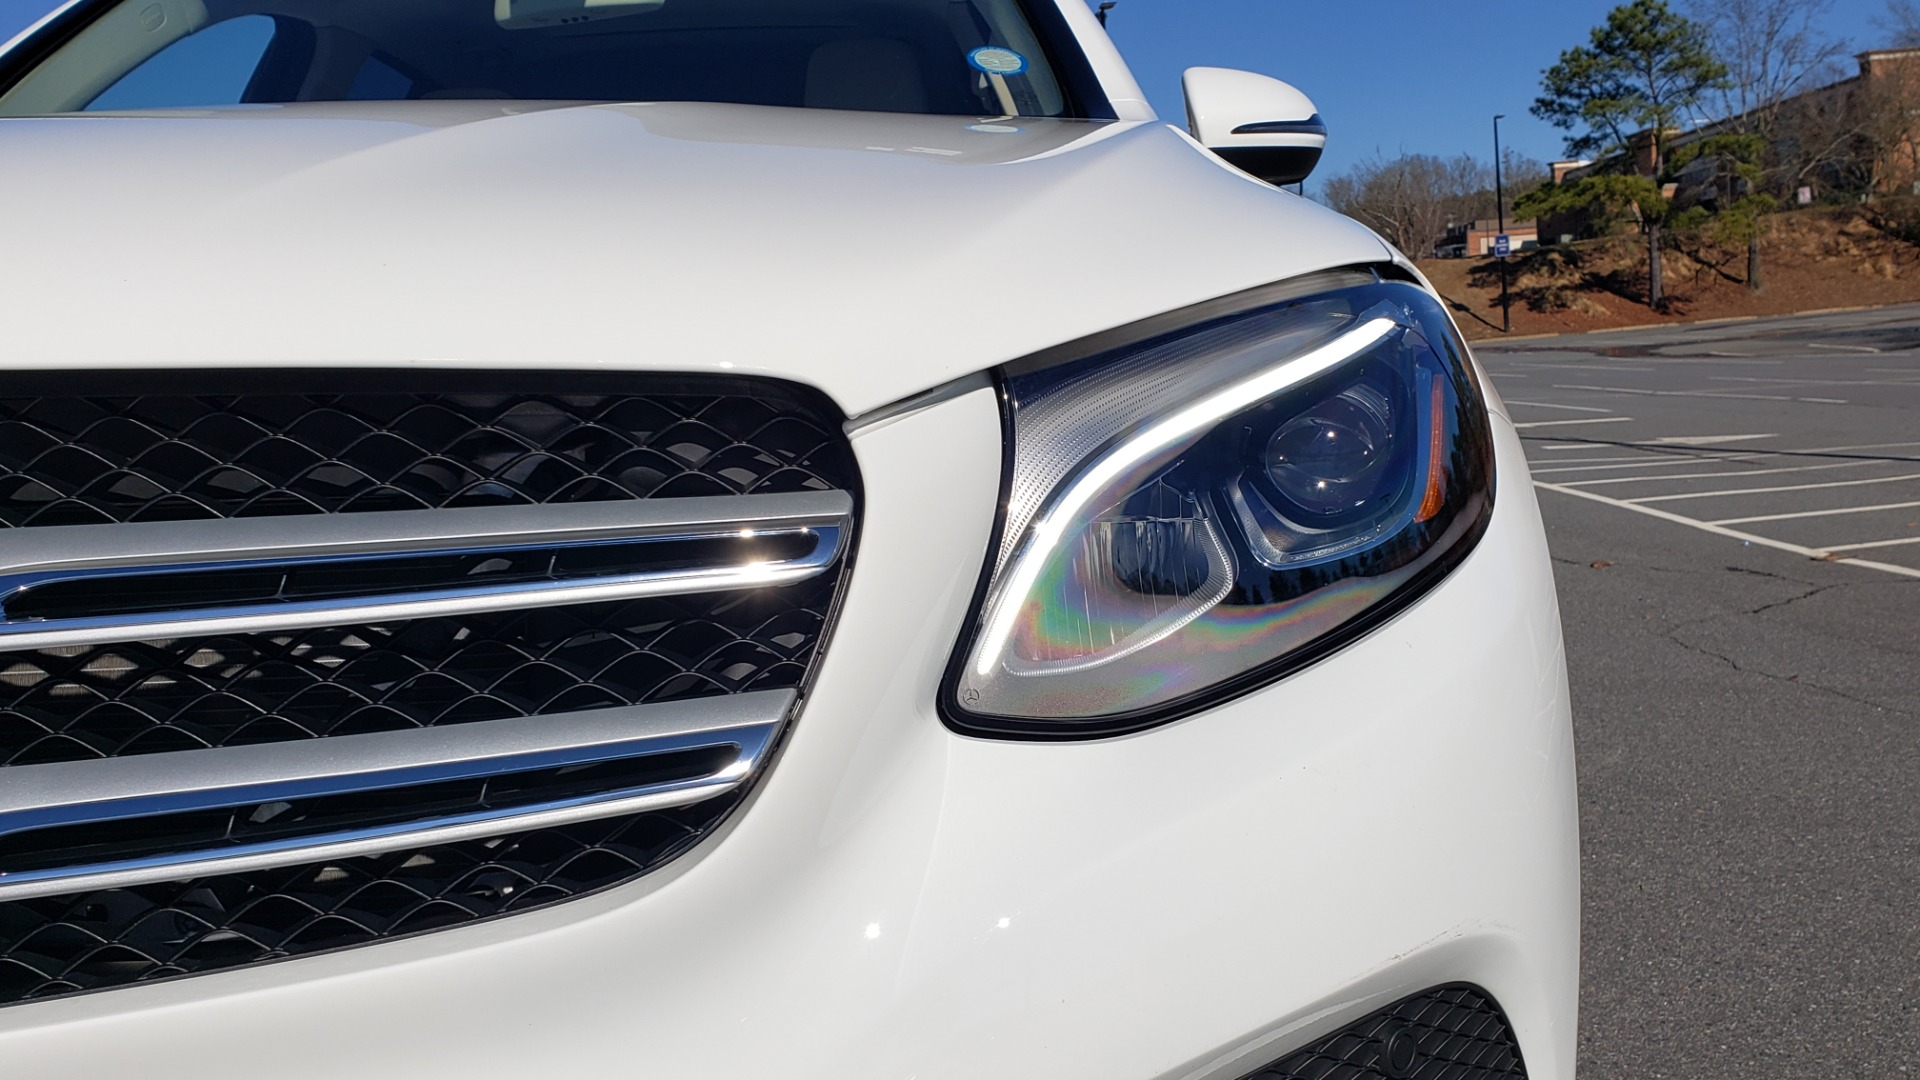 Used 2018 Mercedes-Benz GLC 300 4MATIC / PREM PKG / NAV / SUNROOF / REARVIEW for sale $36,995 at Formula Imports in Charlotte NC 28227 26